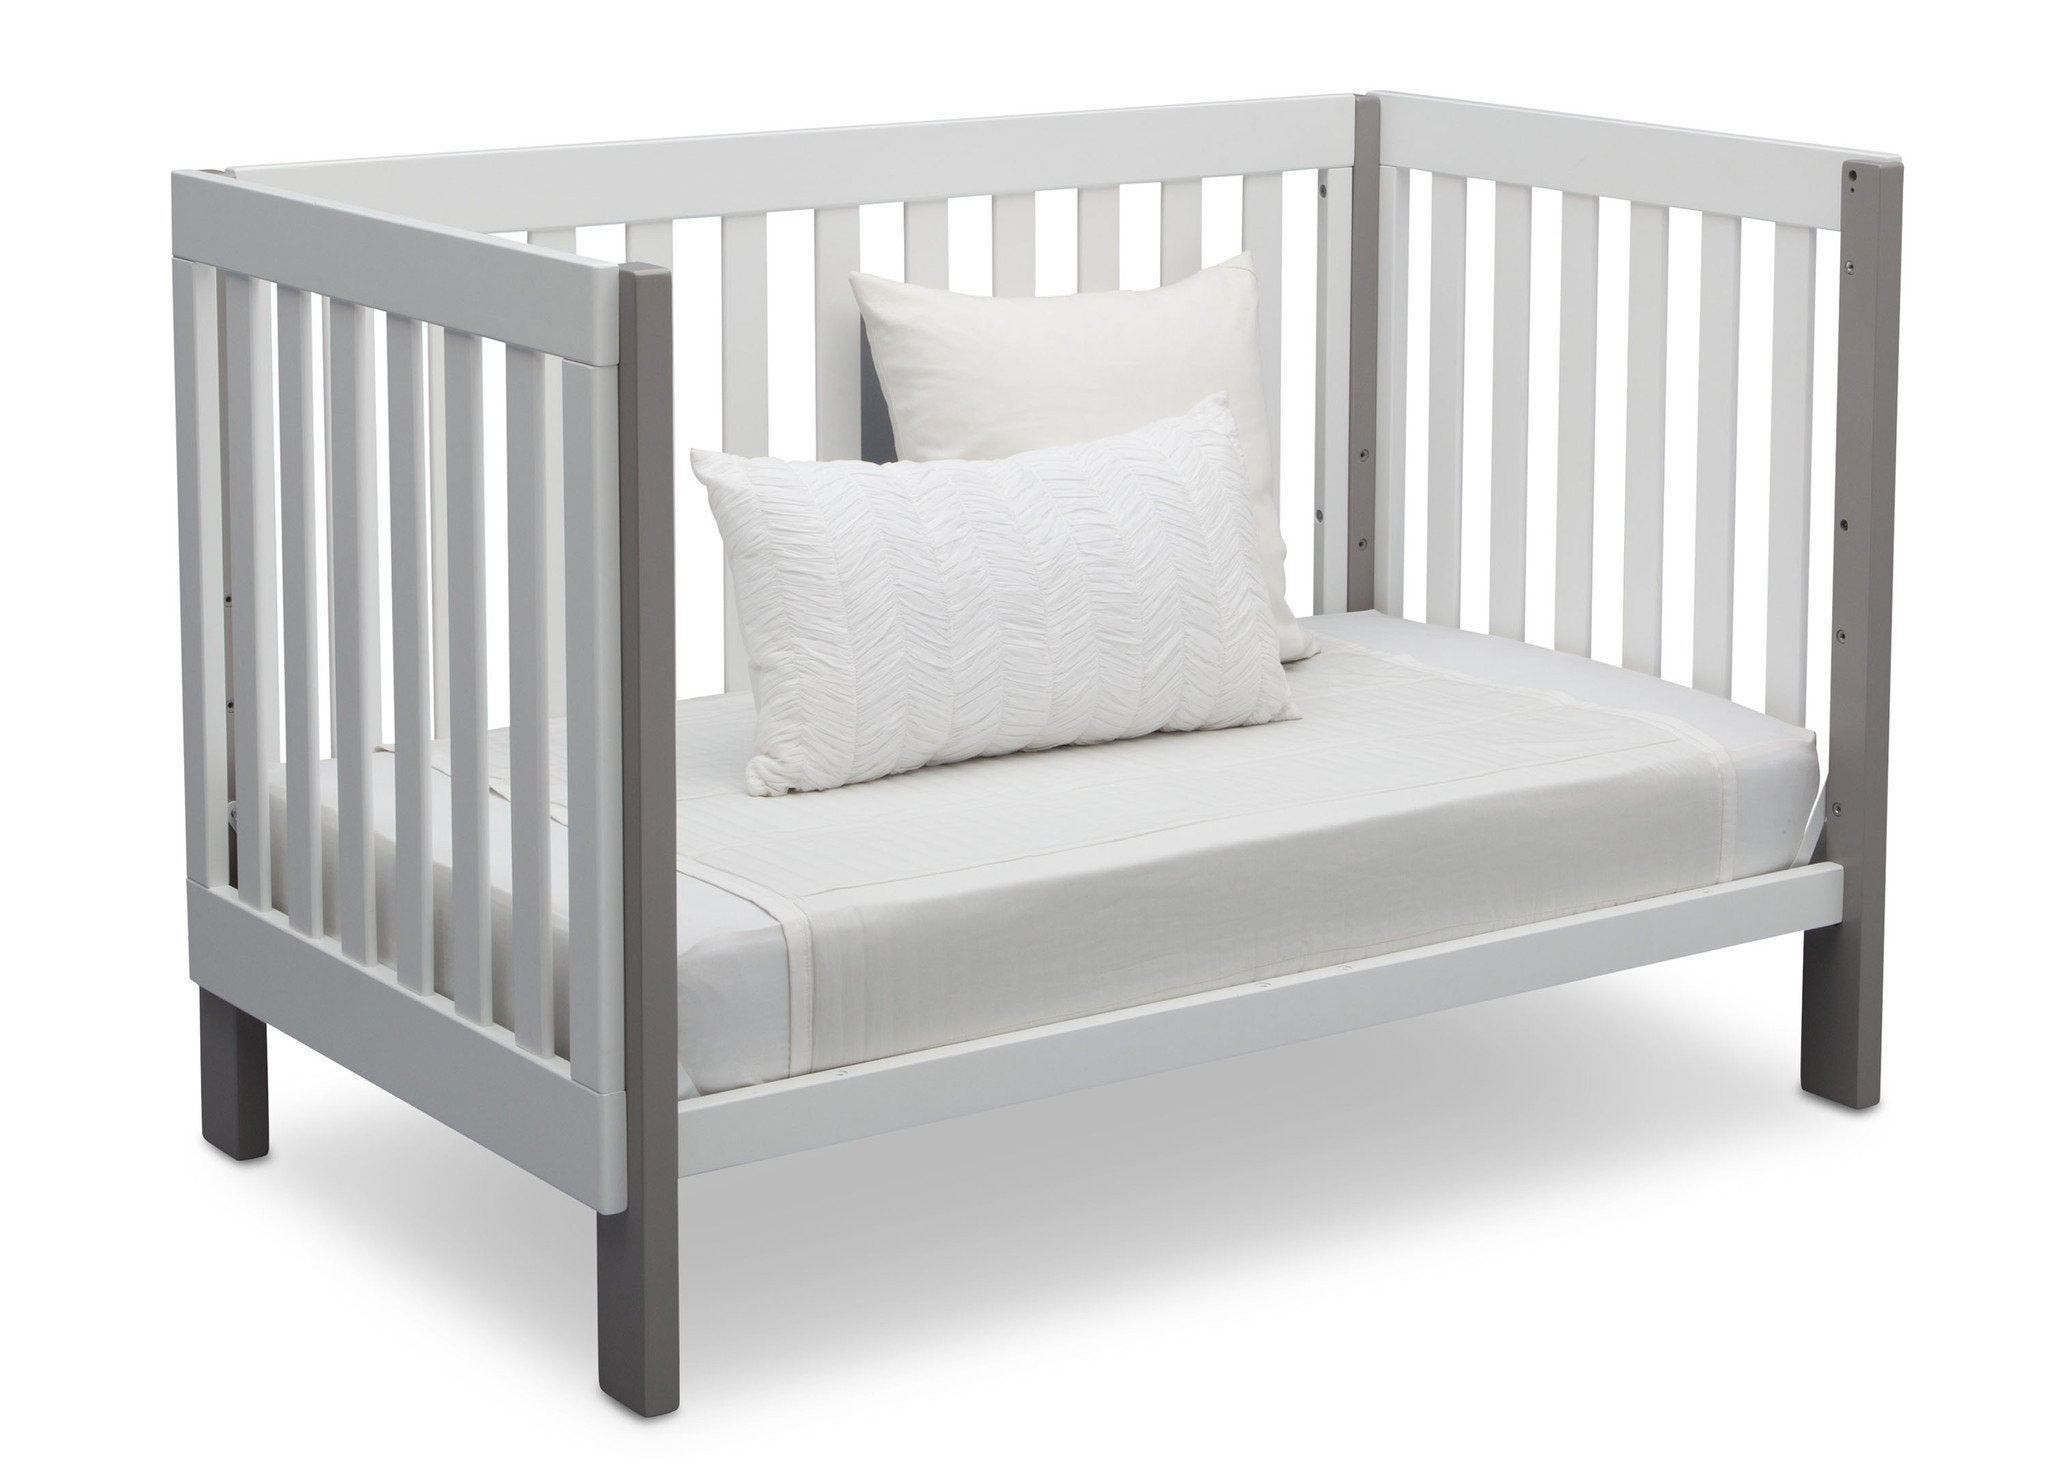 Delta Children Bianca with Grey (166) Bellevue 3-in-1 Crib, Daybed Conversion b6b